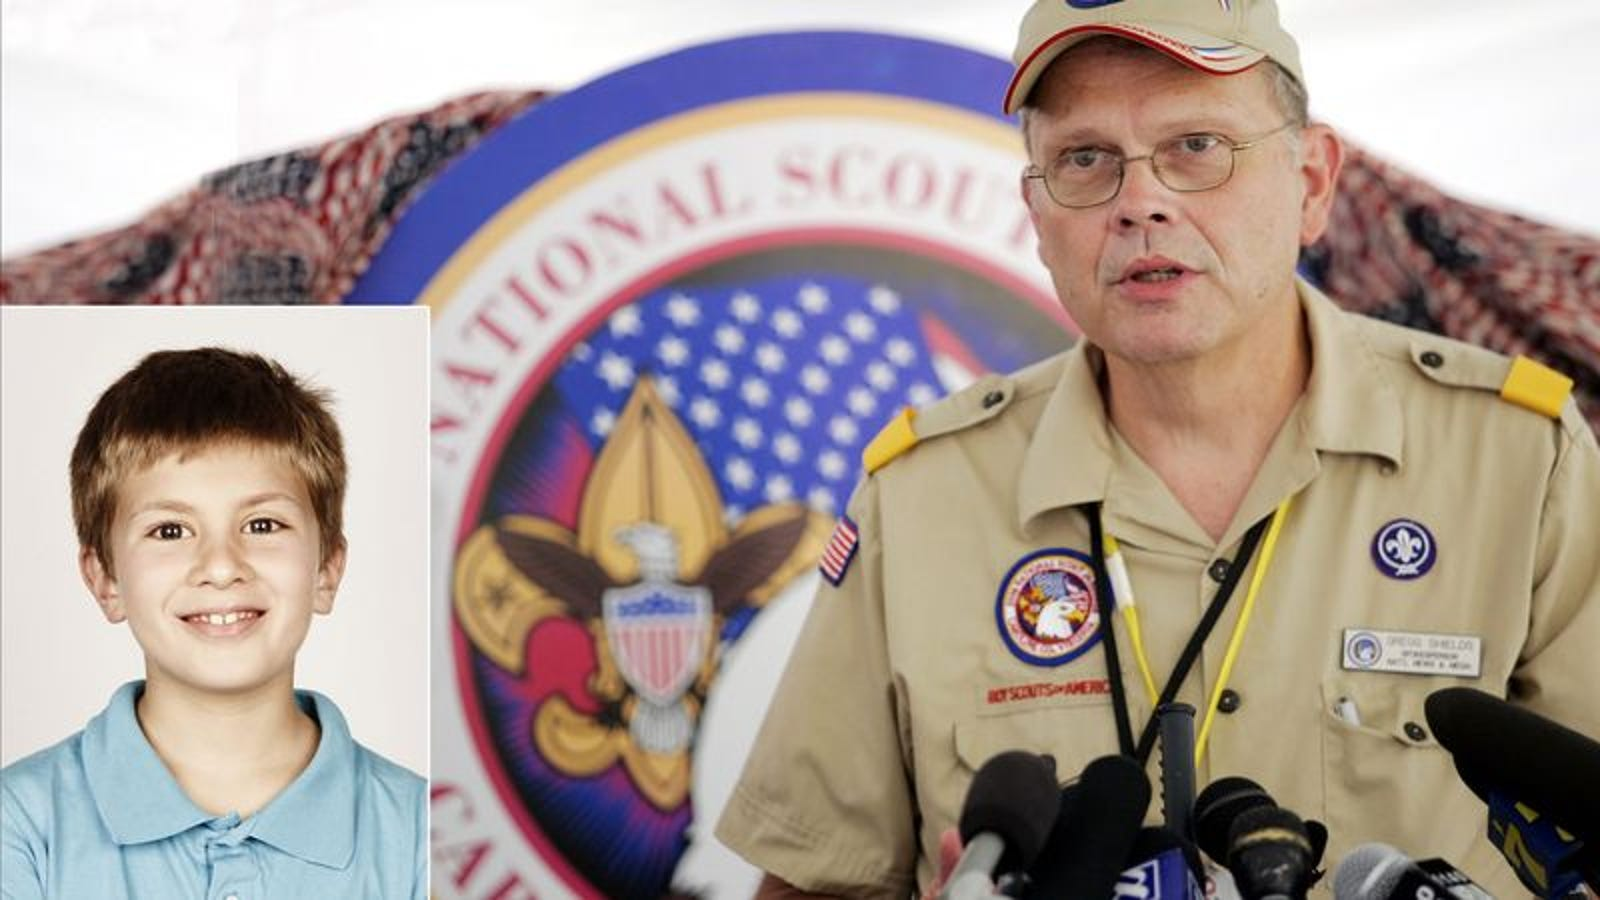 Boy Scouts To Try Out Single Gay 12-Year-Old Before Making -1136